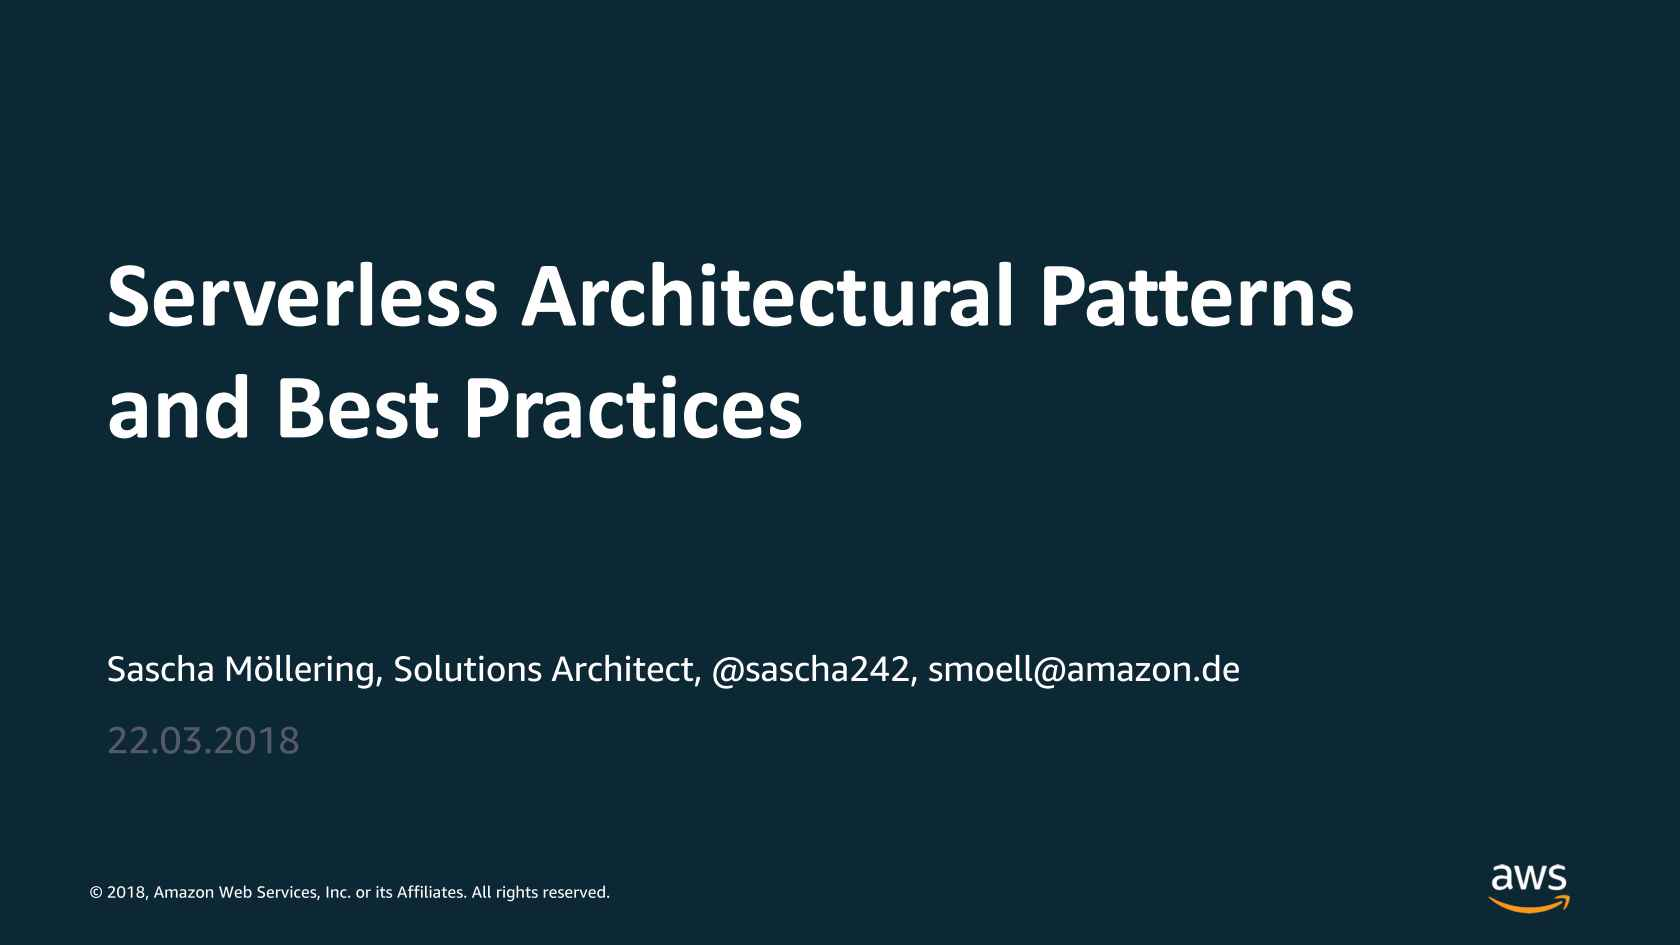 Serverless Architectural Patterns and Best Practices